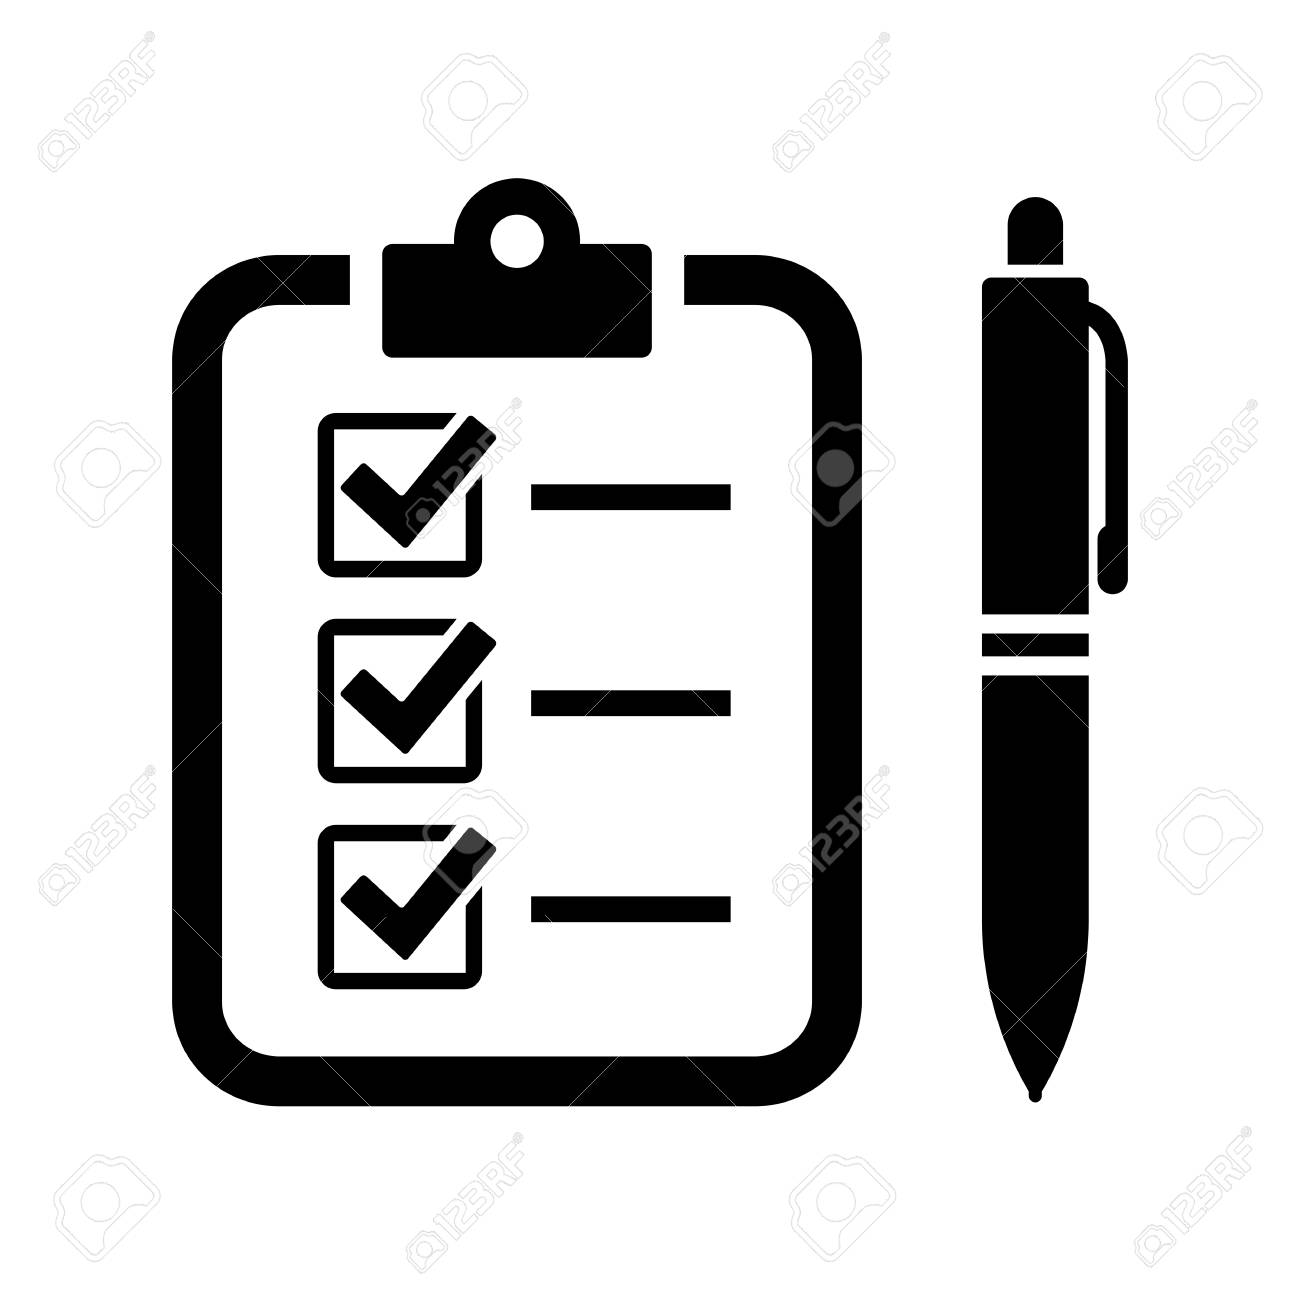 Fill out the form with pen and checklist vector icon - 97441723